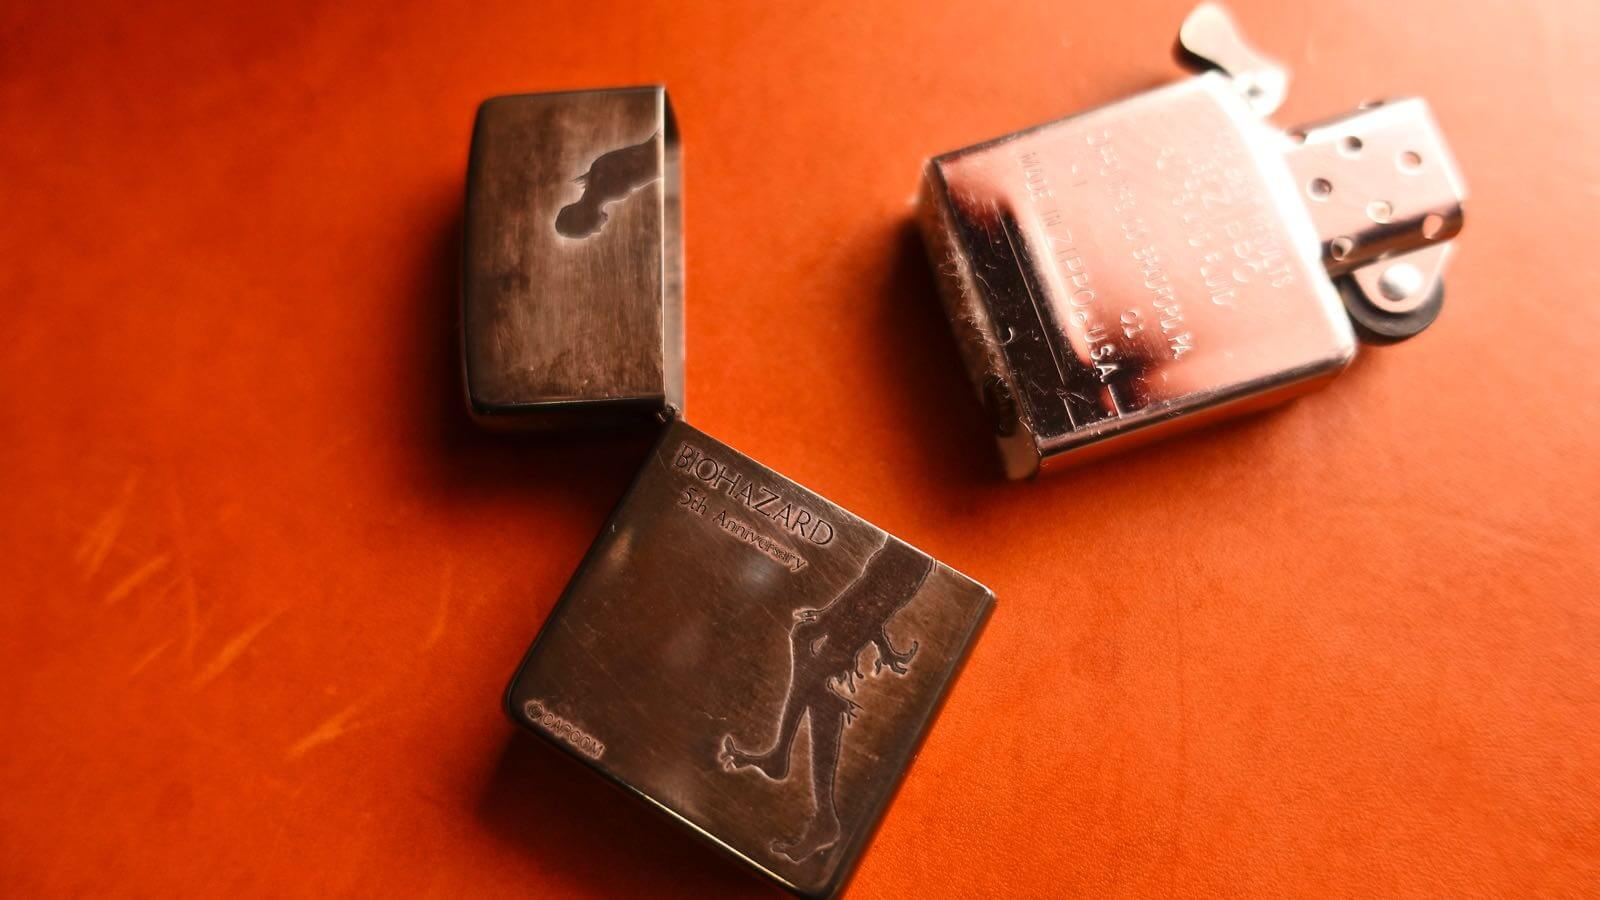 0012 Baiohazad 5th anniversary zippo collaboration 06